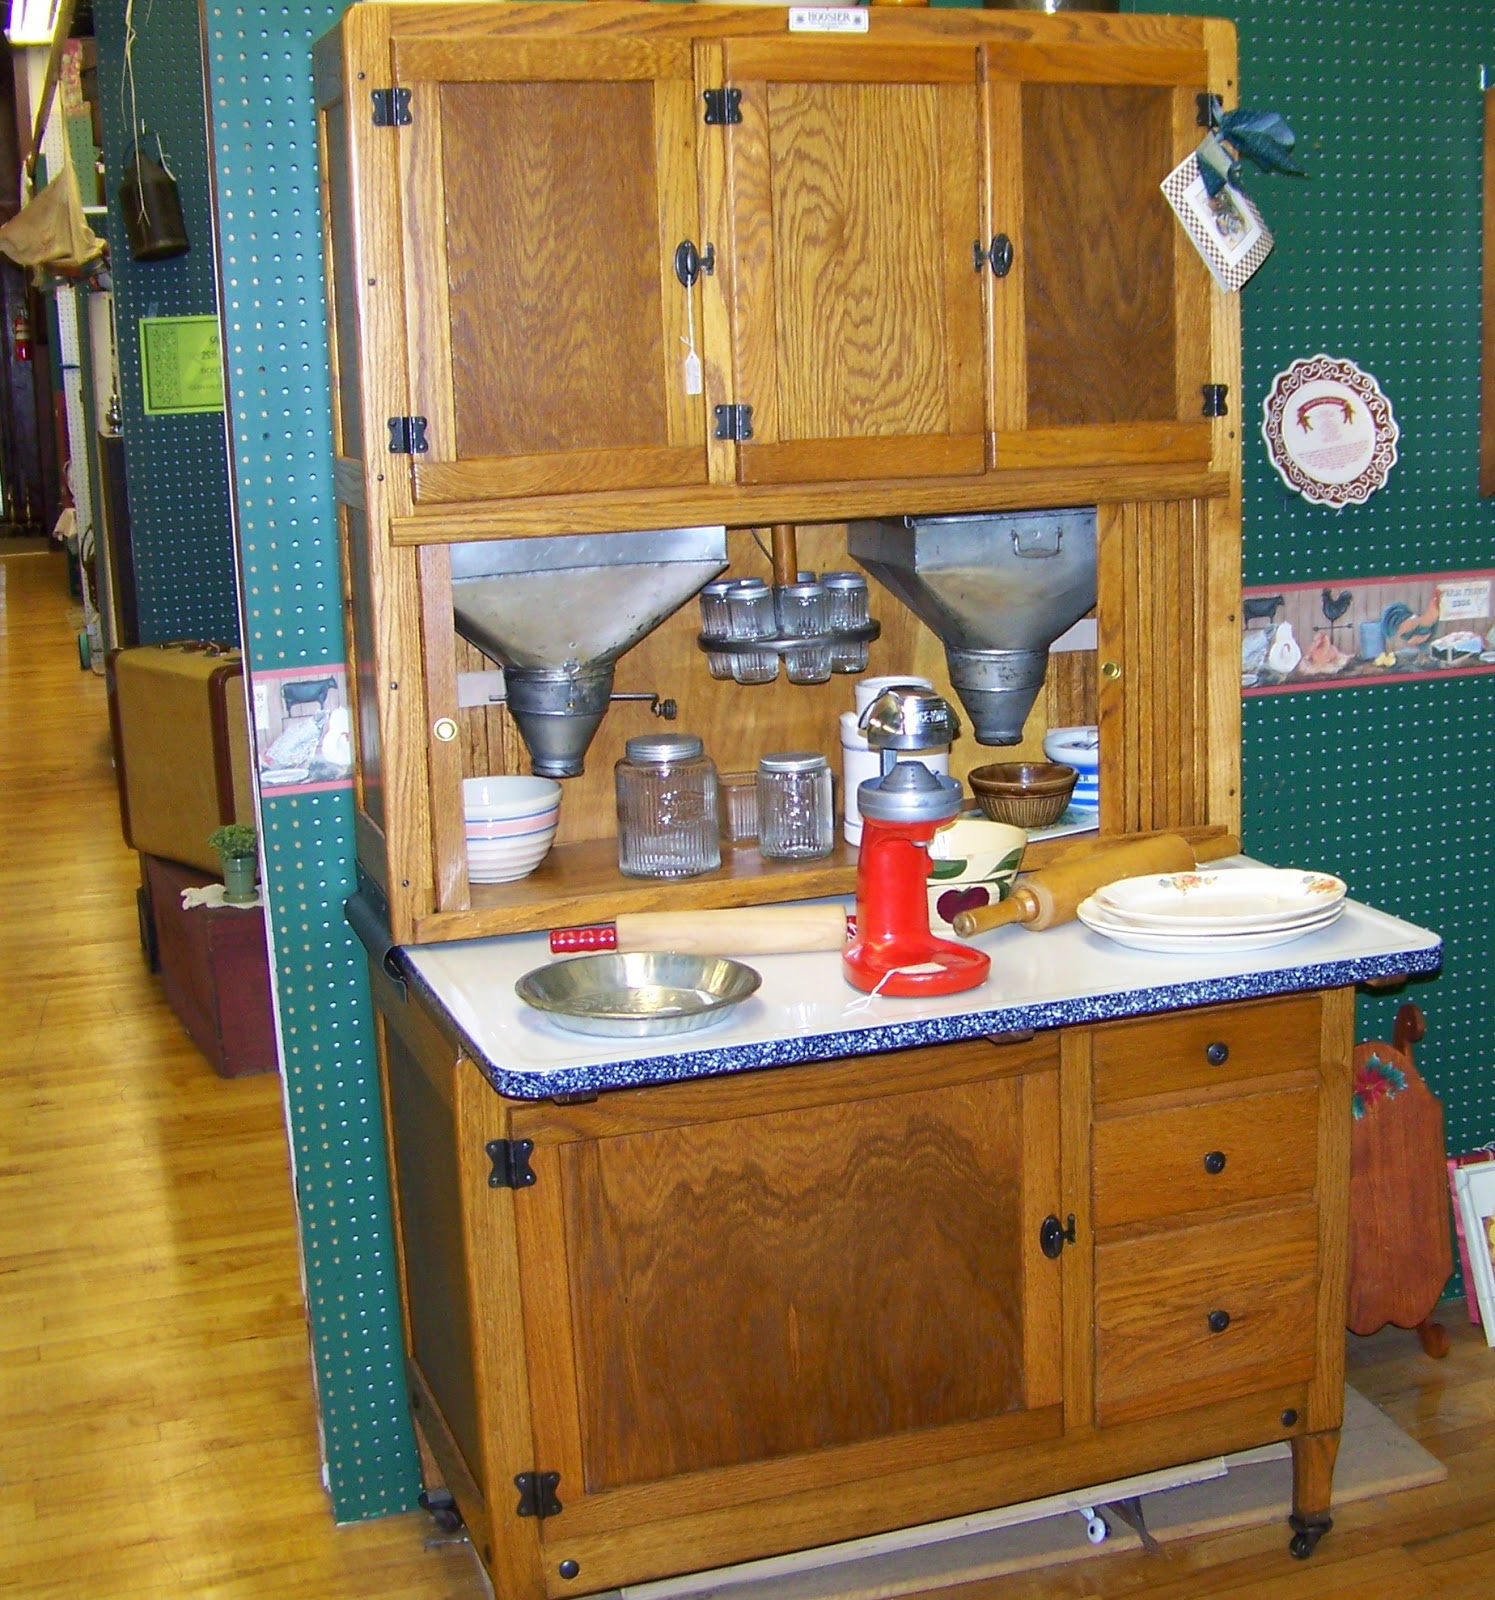 ... Hoosier cabinet. However, the they still remain common on the antique  market, and are still used as supplemental cabinets even today. - Furniture Knowledge: HOOSIER CABINET - CABINET PARTS, CABINET PULLS